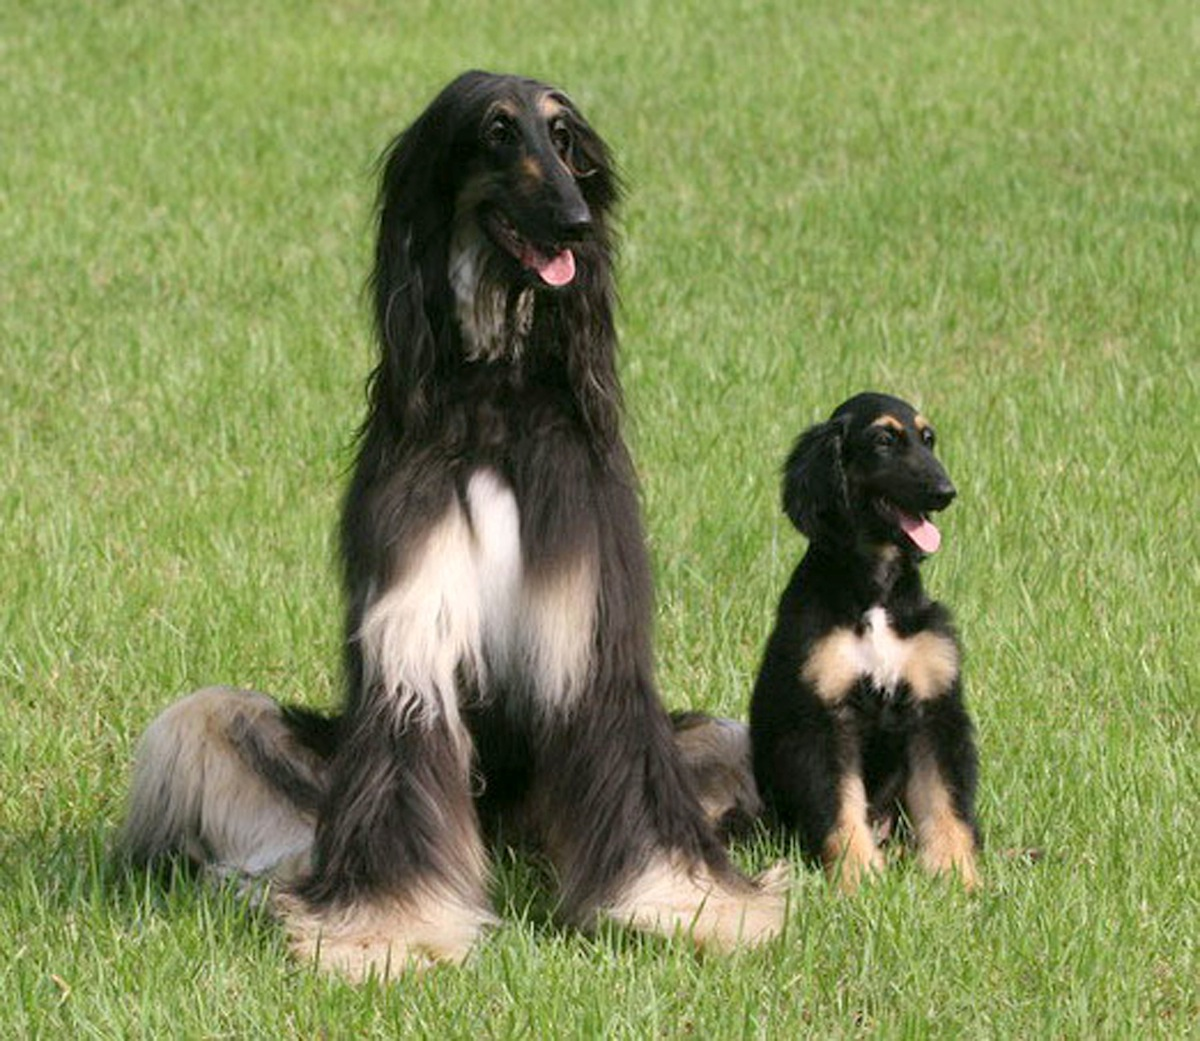 Snuppy, (R) the first successfully cloned Afghan hound, sits with his genetic father at the Seoul National University on Aug. 3, 2005 in Seoul